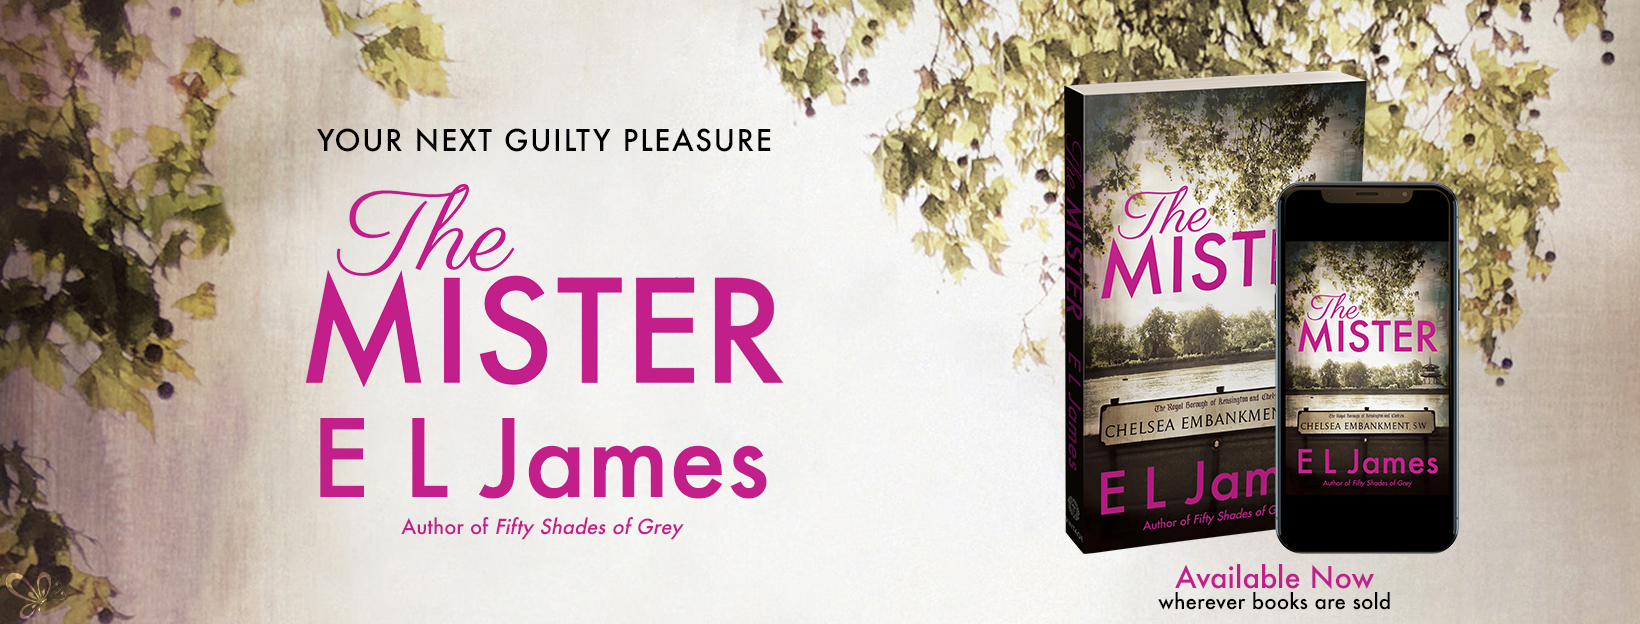 Release Blitz: The Mister by E.L. James